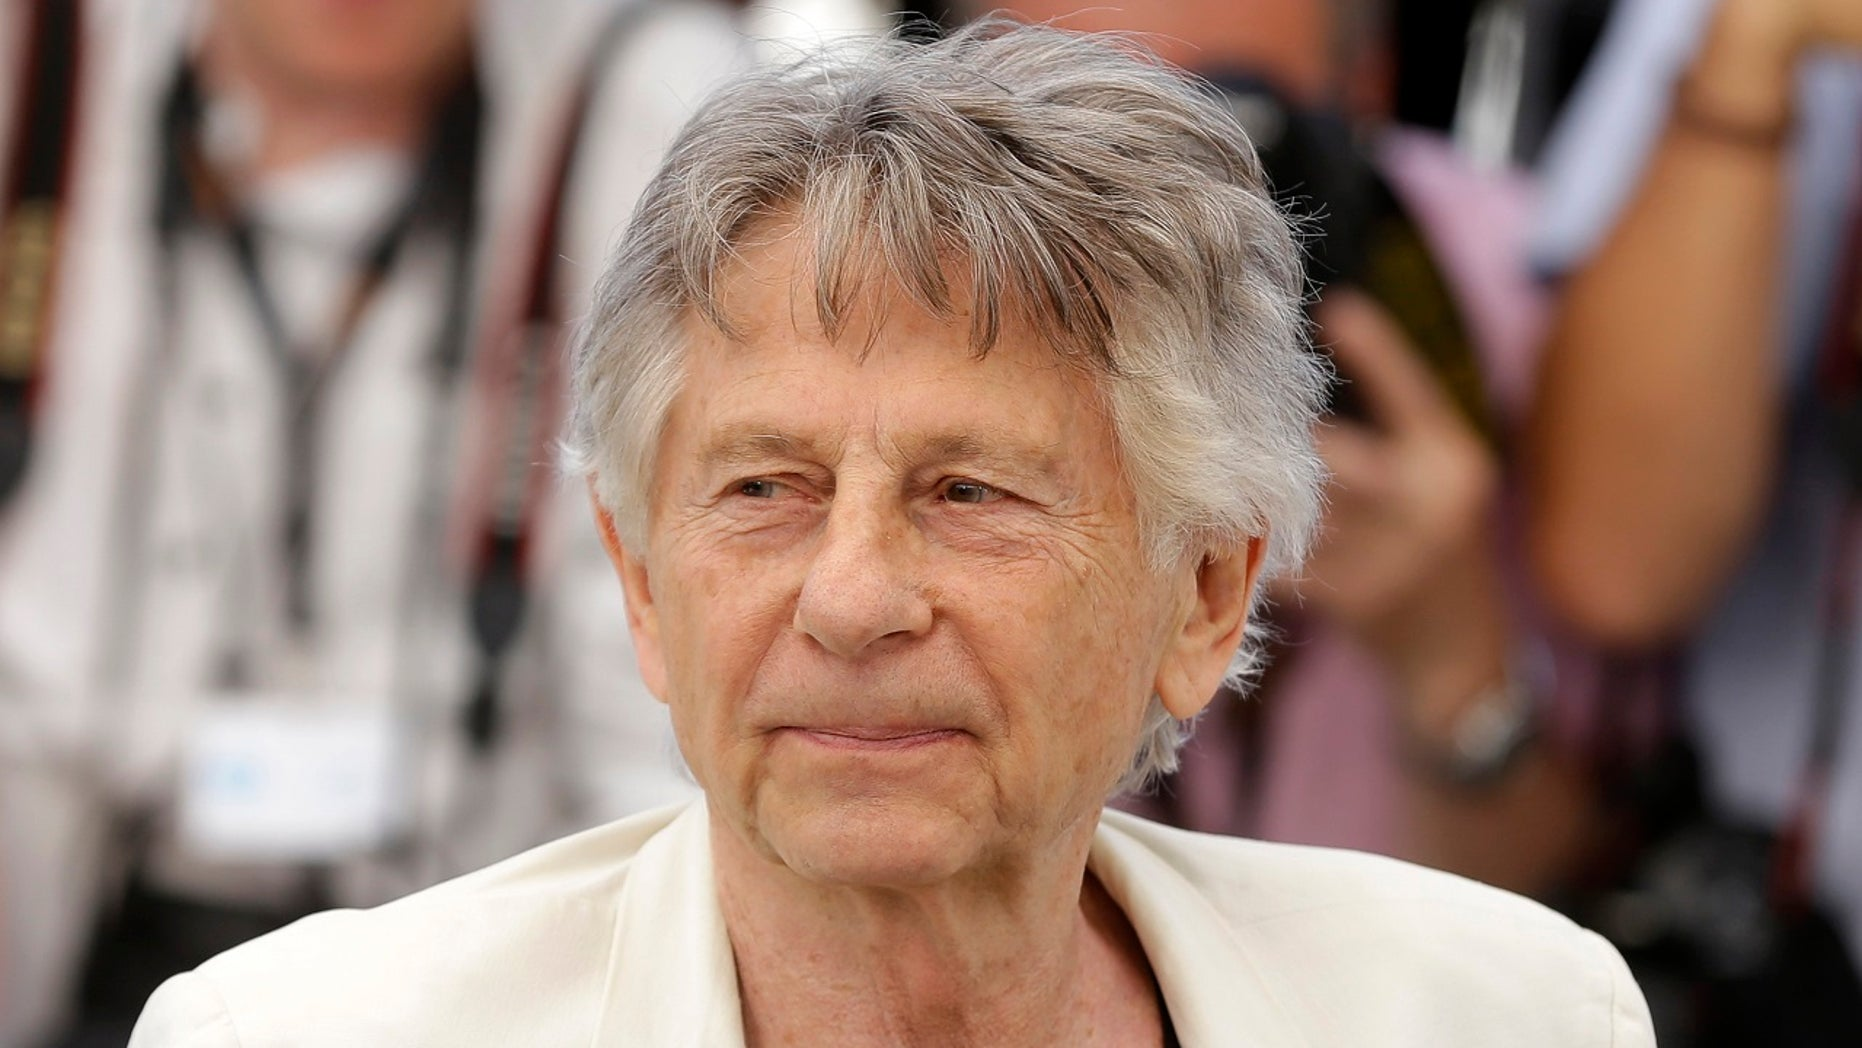 Roman Polanski's sexual assault victim, Samantha Geimer, will appear in a Los Angeles court on Friday, June 9, 2017, to ask the court to drop the long-running case against the director.